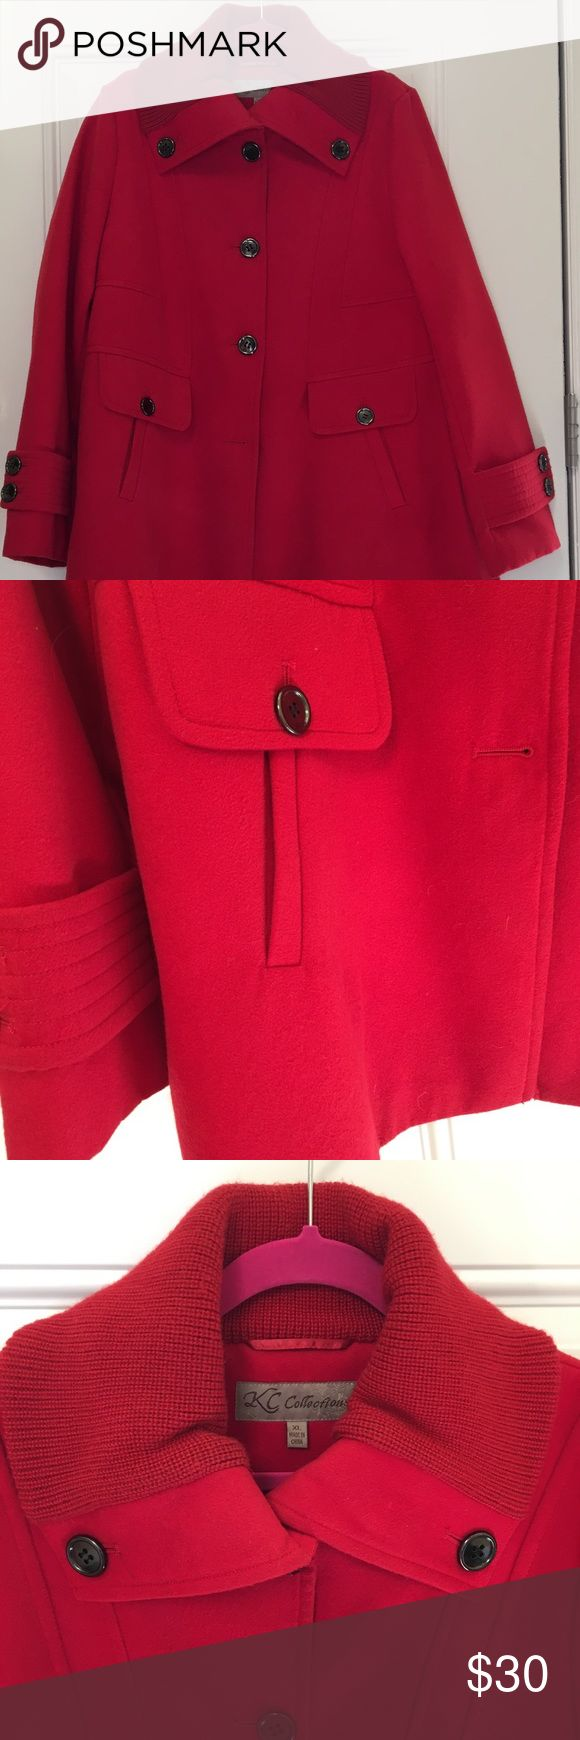 Red Coat Cute red pea coat is warm, comfortable and stylish!! It is lined with two pockets. The collar has a sweater type material. KC Collections Jackets & Coats Pea Coats